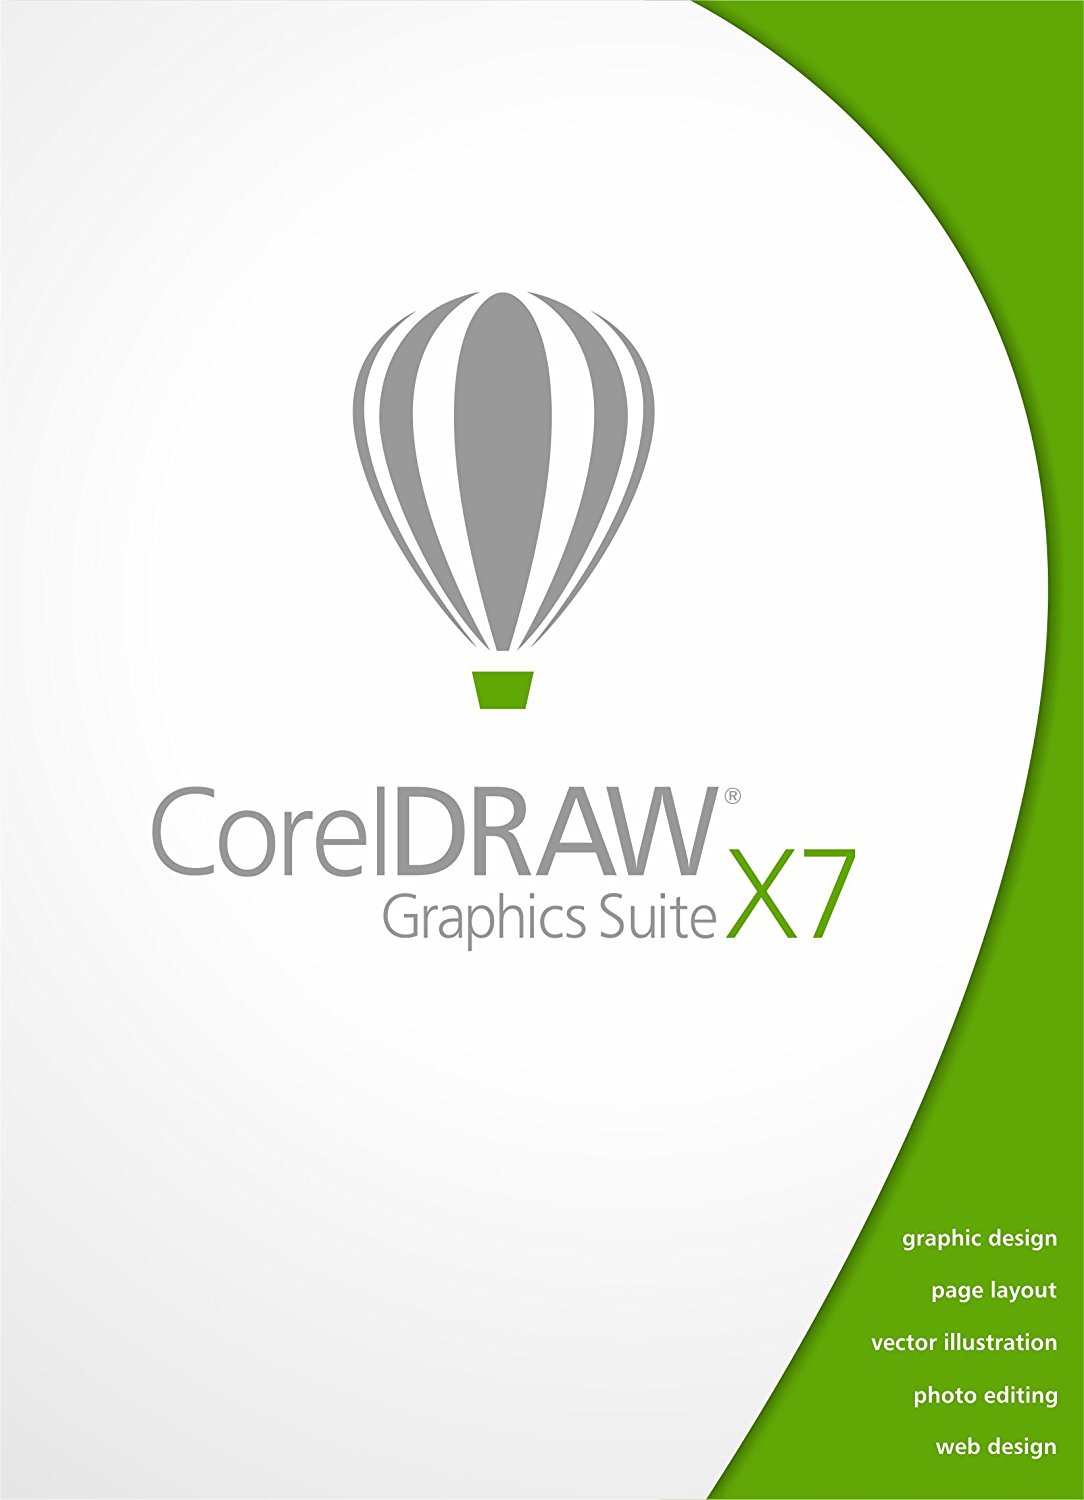 corel draw clipart viewer 20 free Cliparts | Download ...